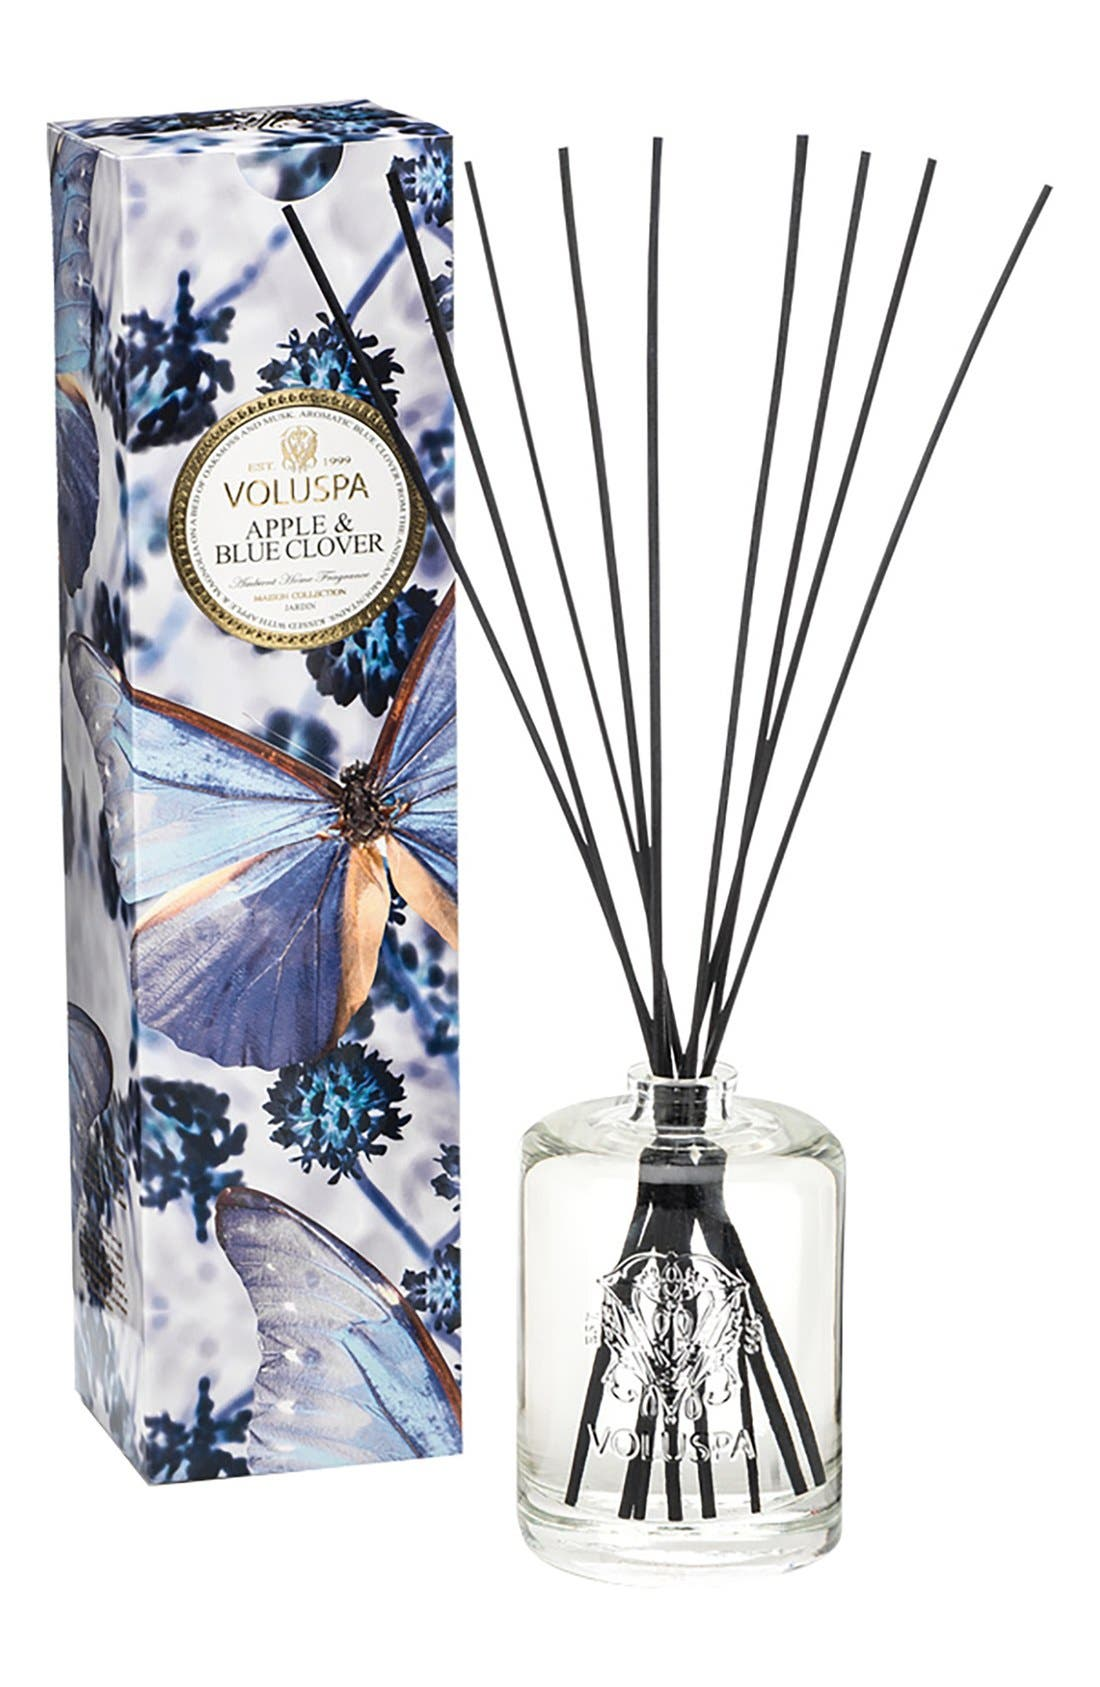 Voluspa 'Maison Jardin - Apple & Blue Clover' Home Ambiance Diffuser